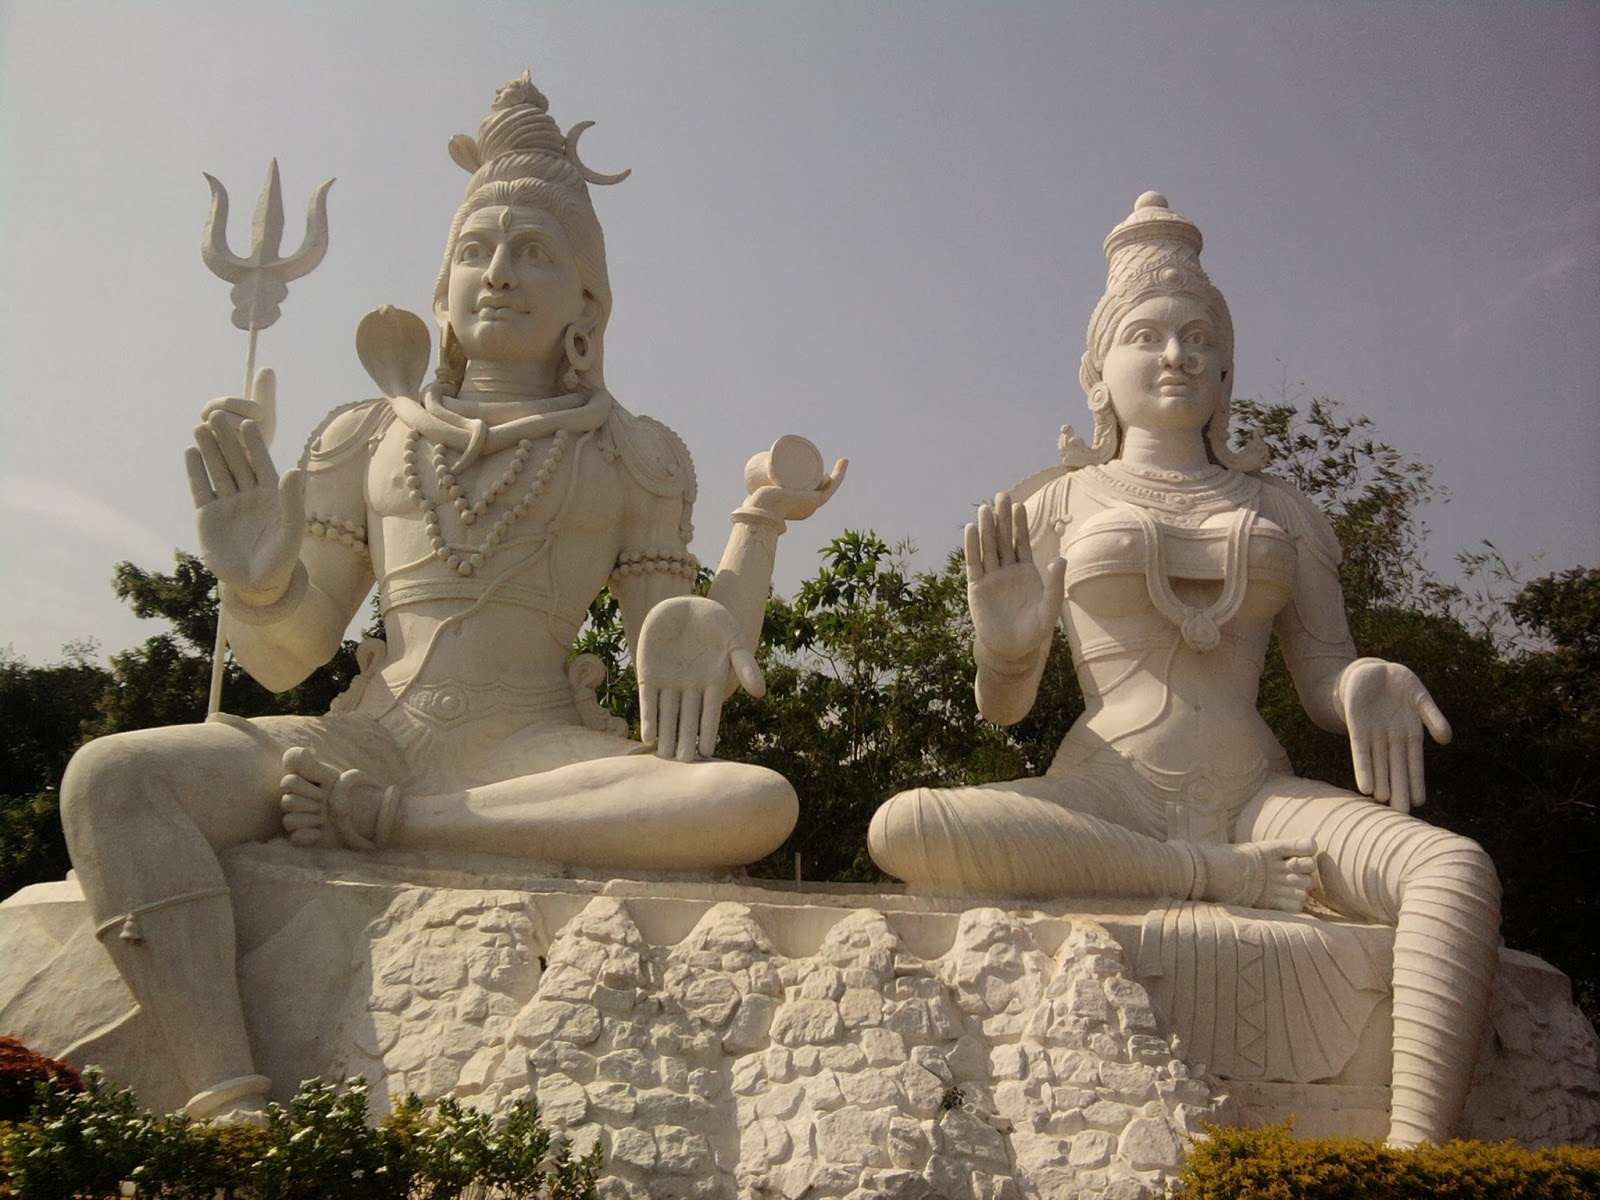 Happy Maha Shivaratri 2014 HD Wallpapers and Images Lord shiv ji and maa parvati